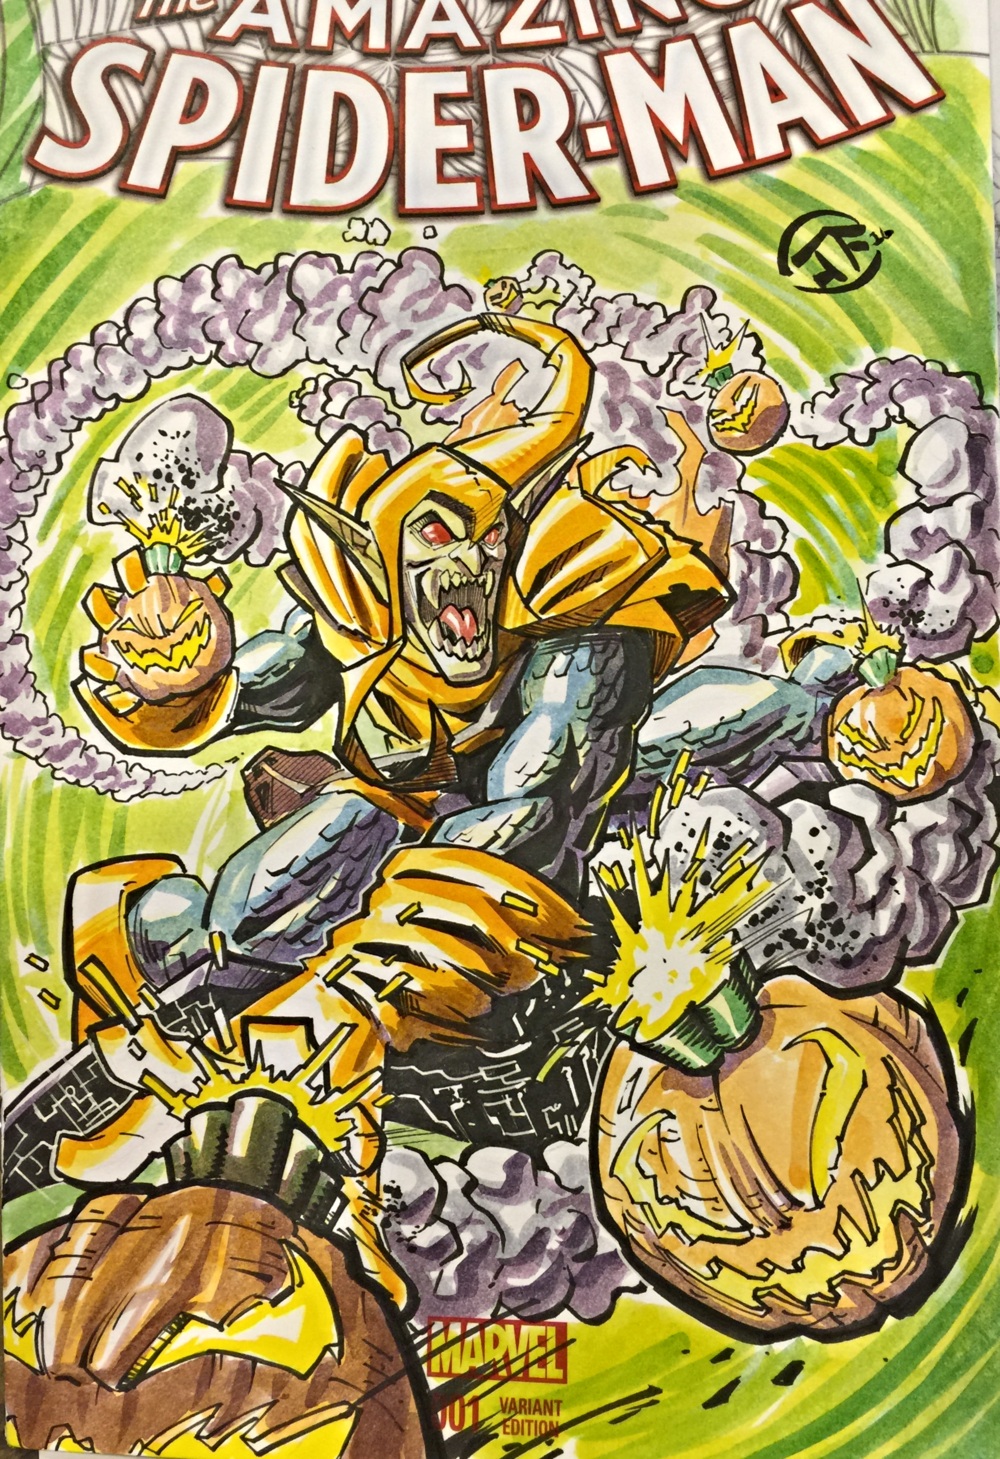 Hobgoblin Watercolor Commission Sketch done on a Blank Cover